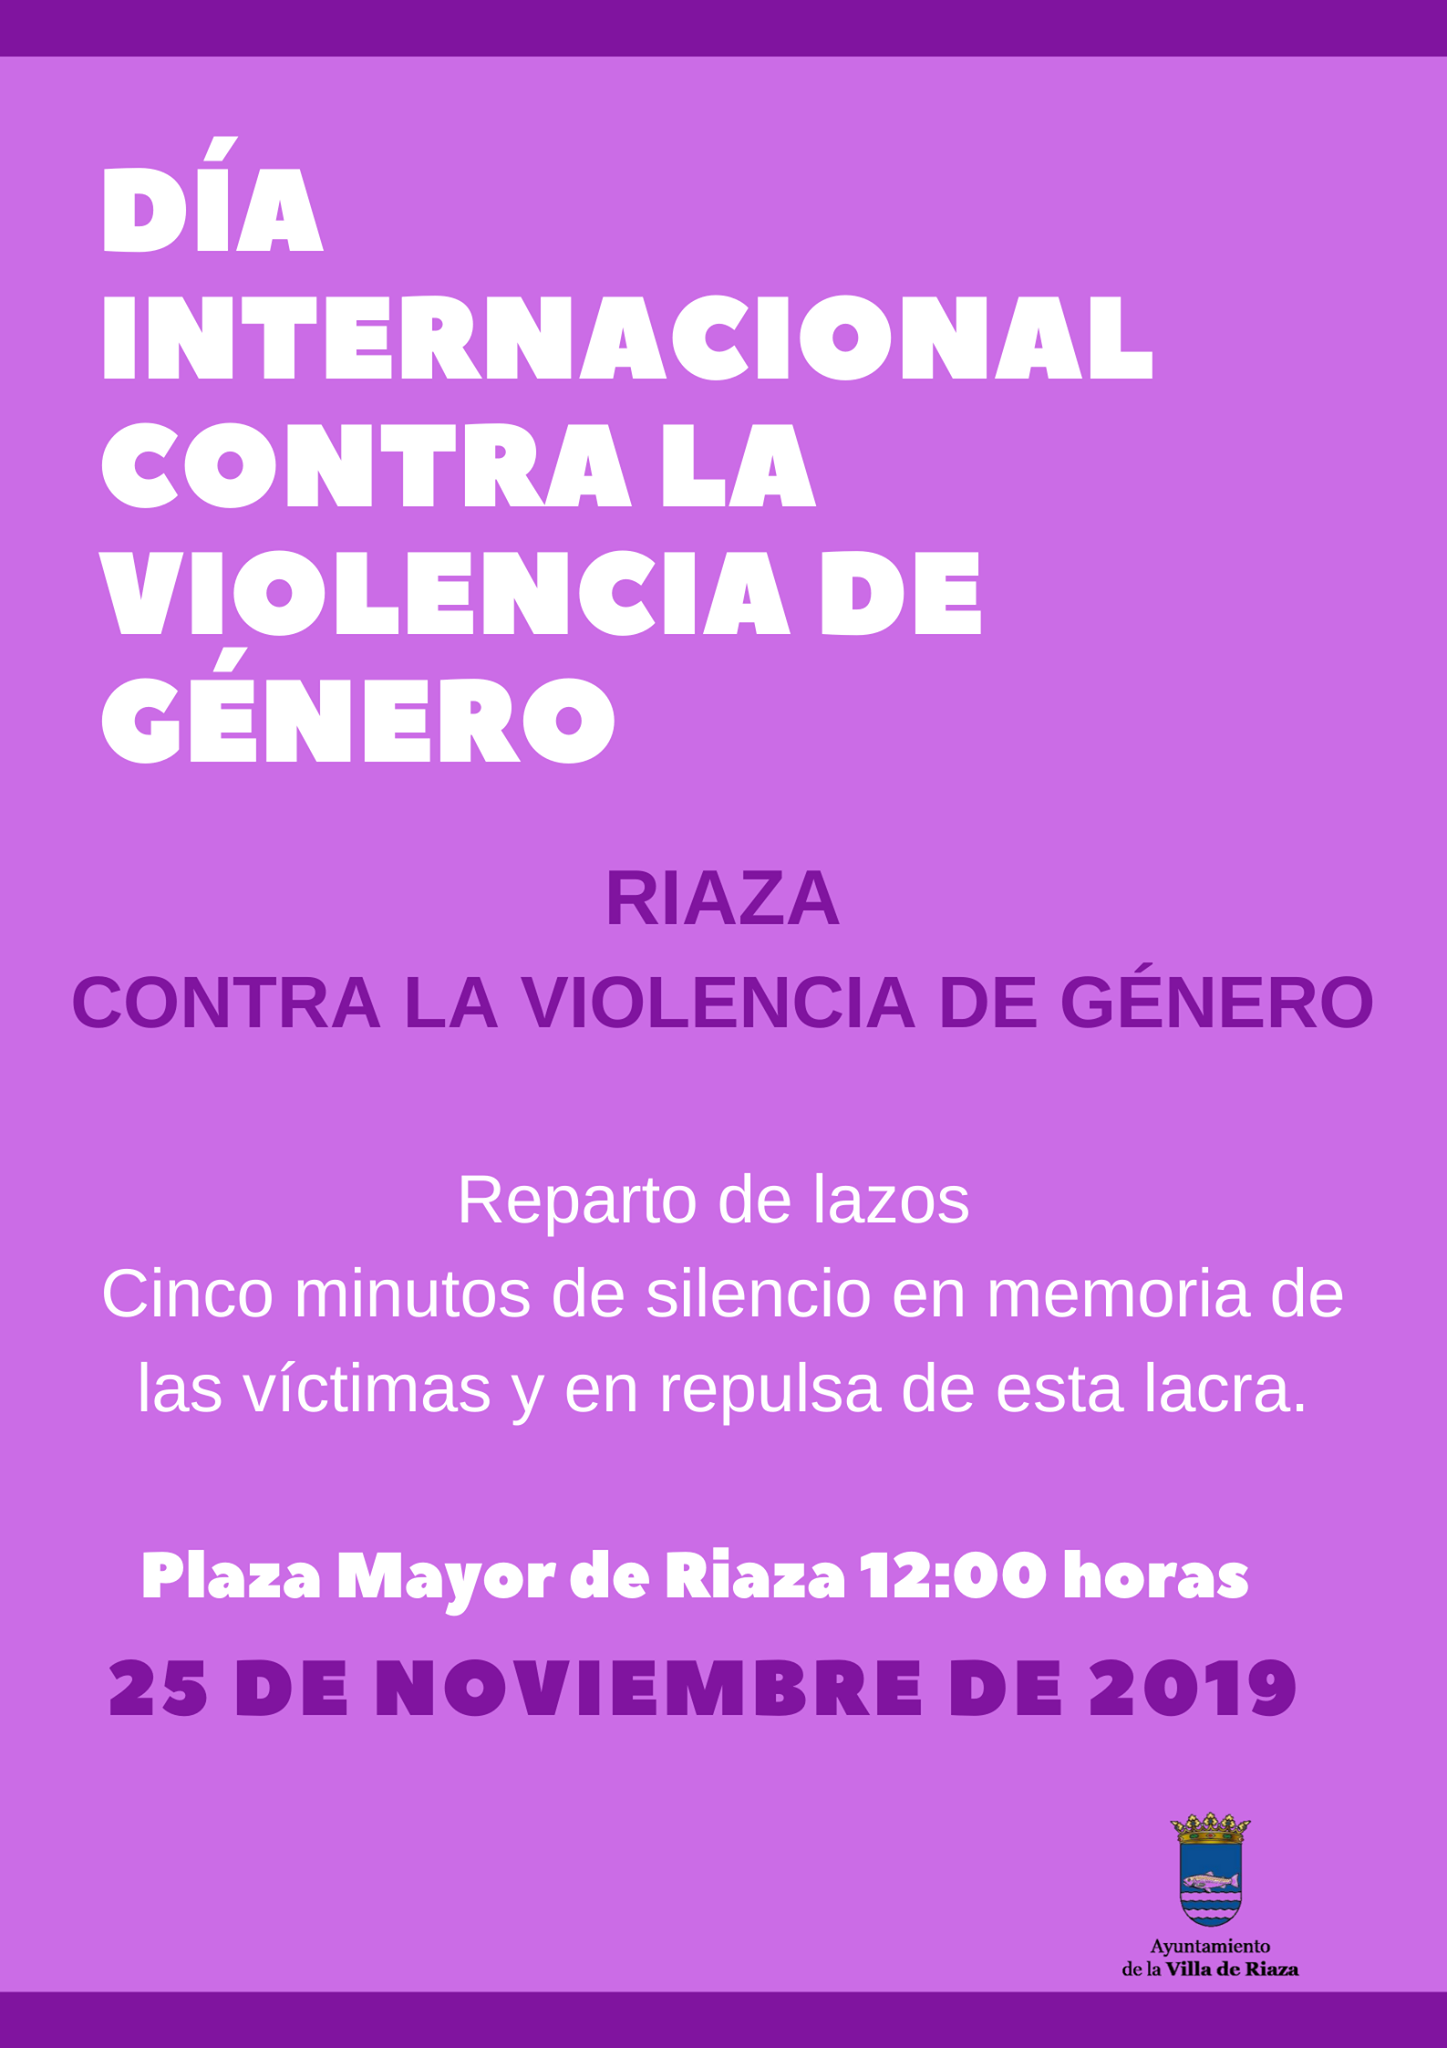 day of abuse gender riaza